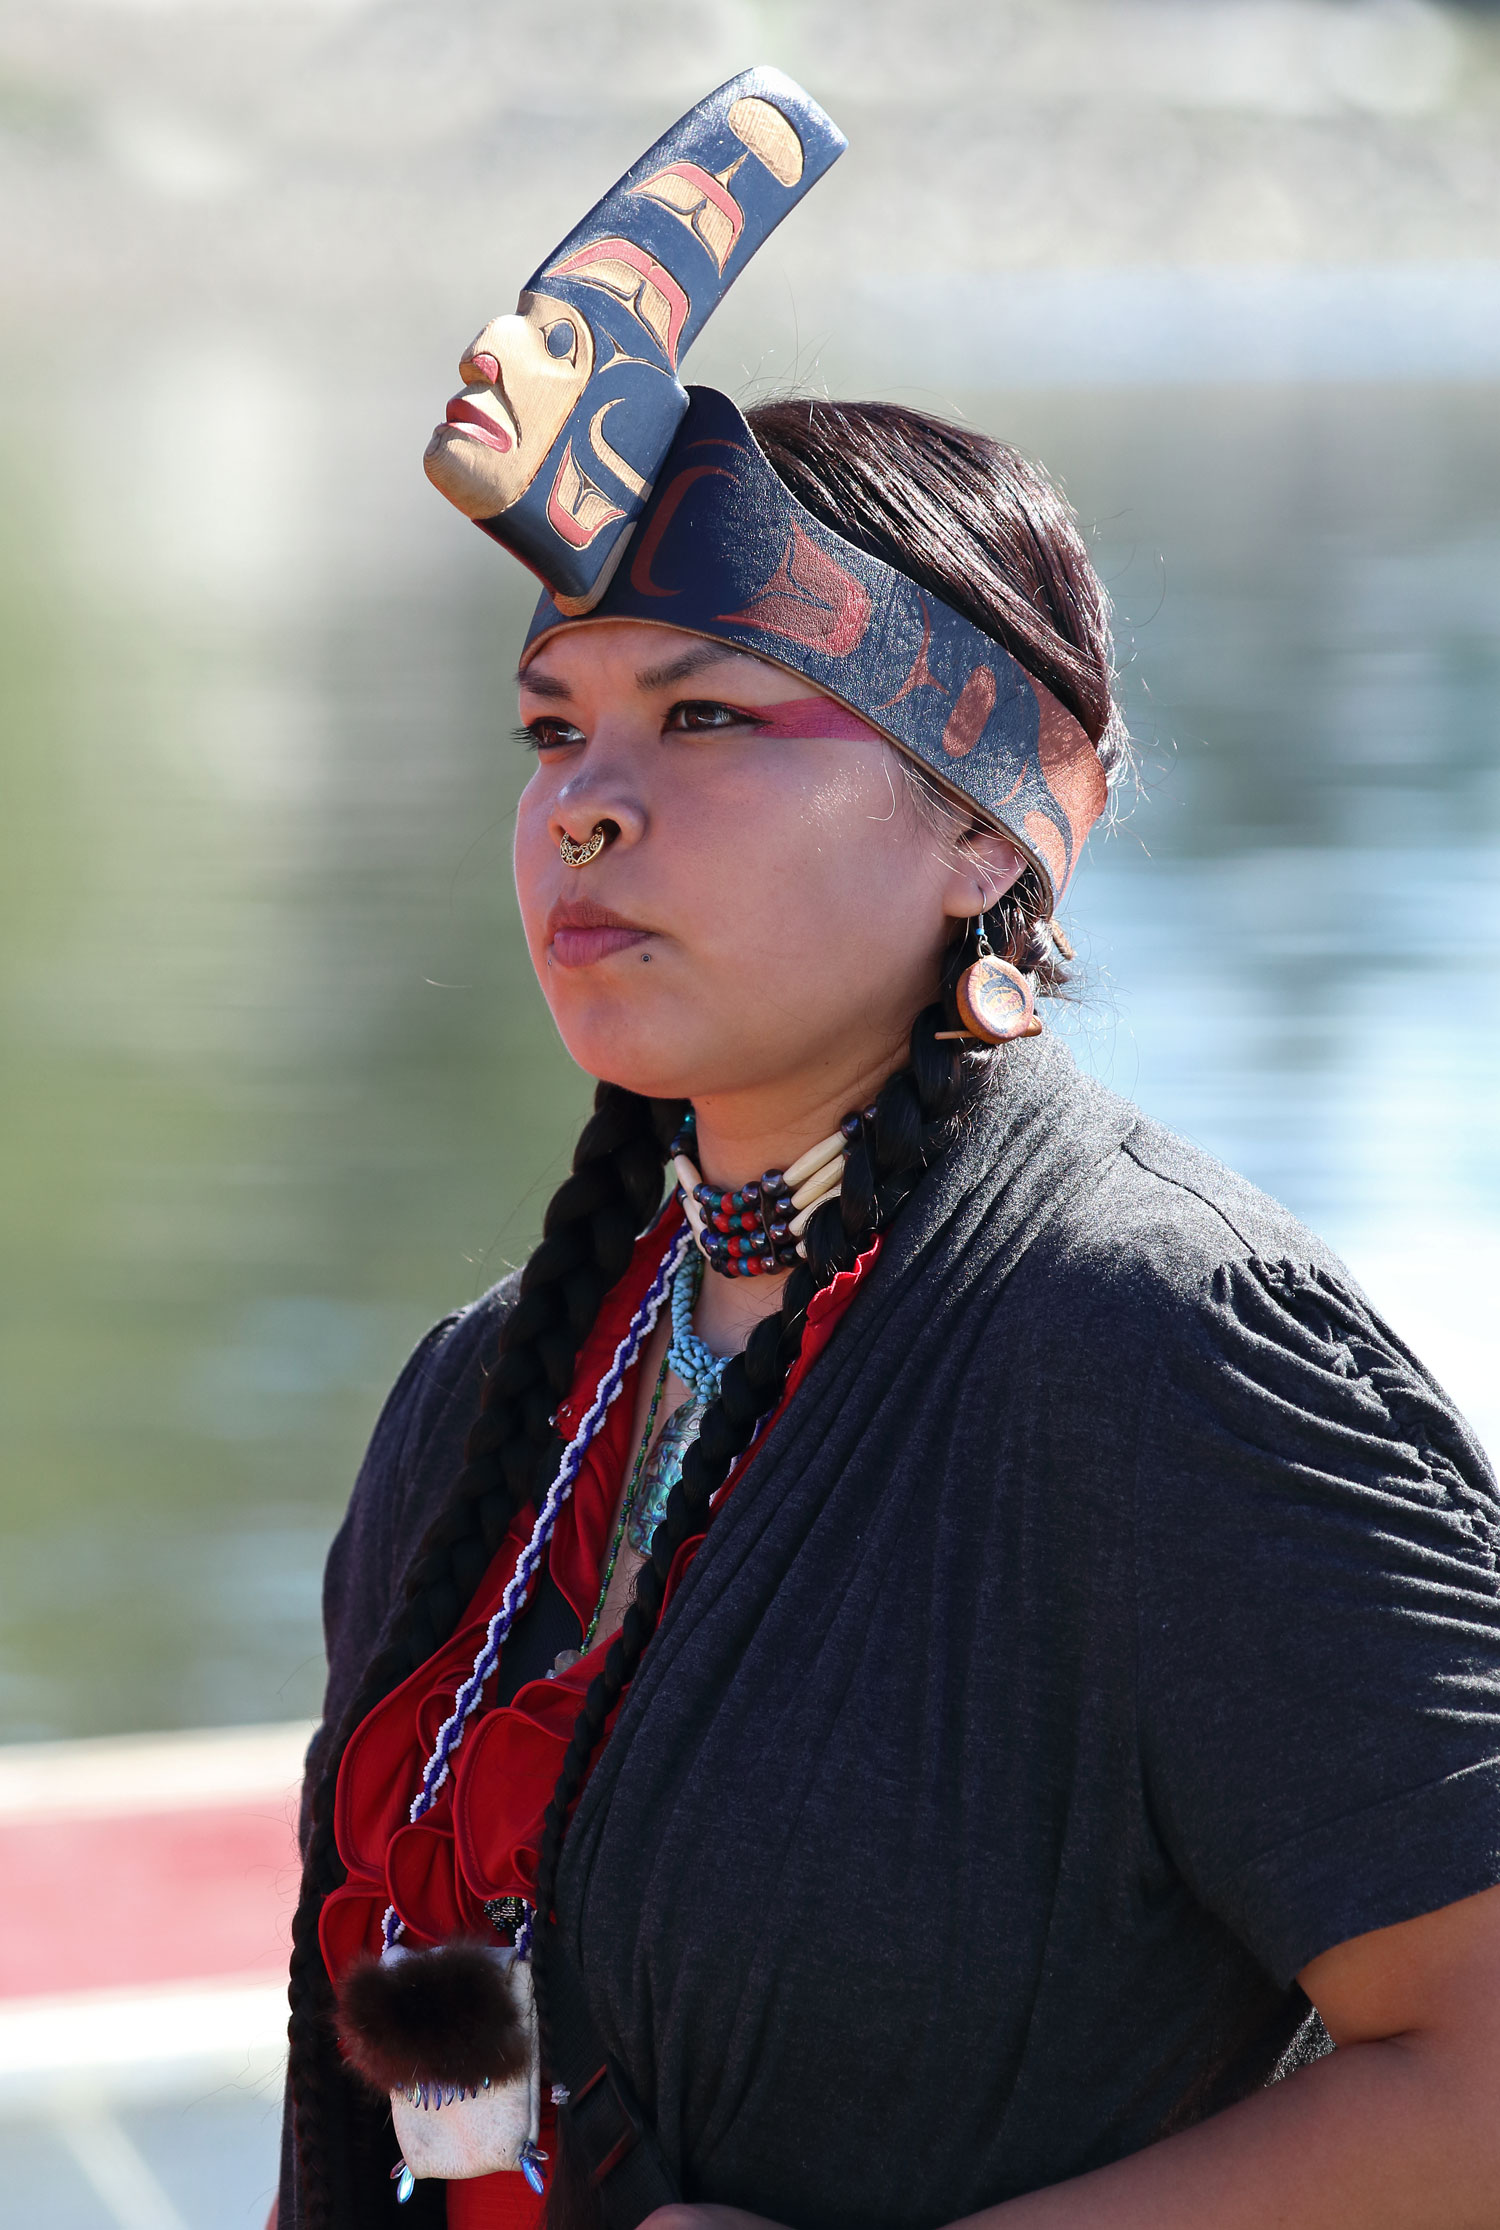 This beautiful Haida woman stood by the canoe that she helped paddle to the ceremony in Kasaan.